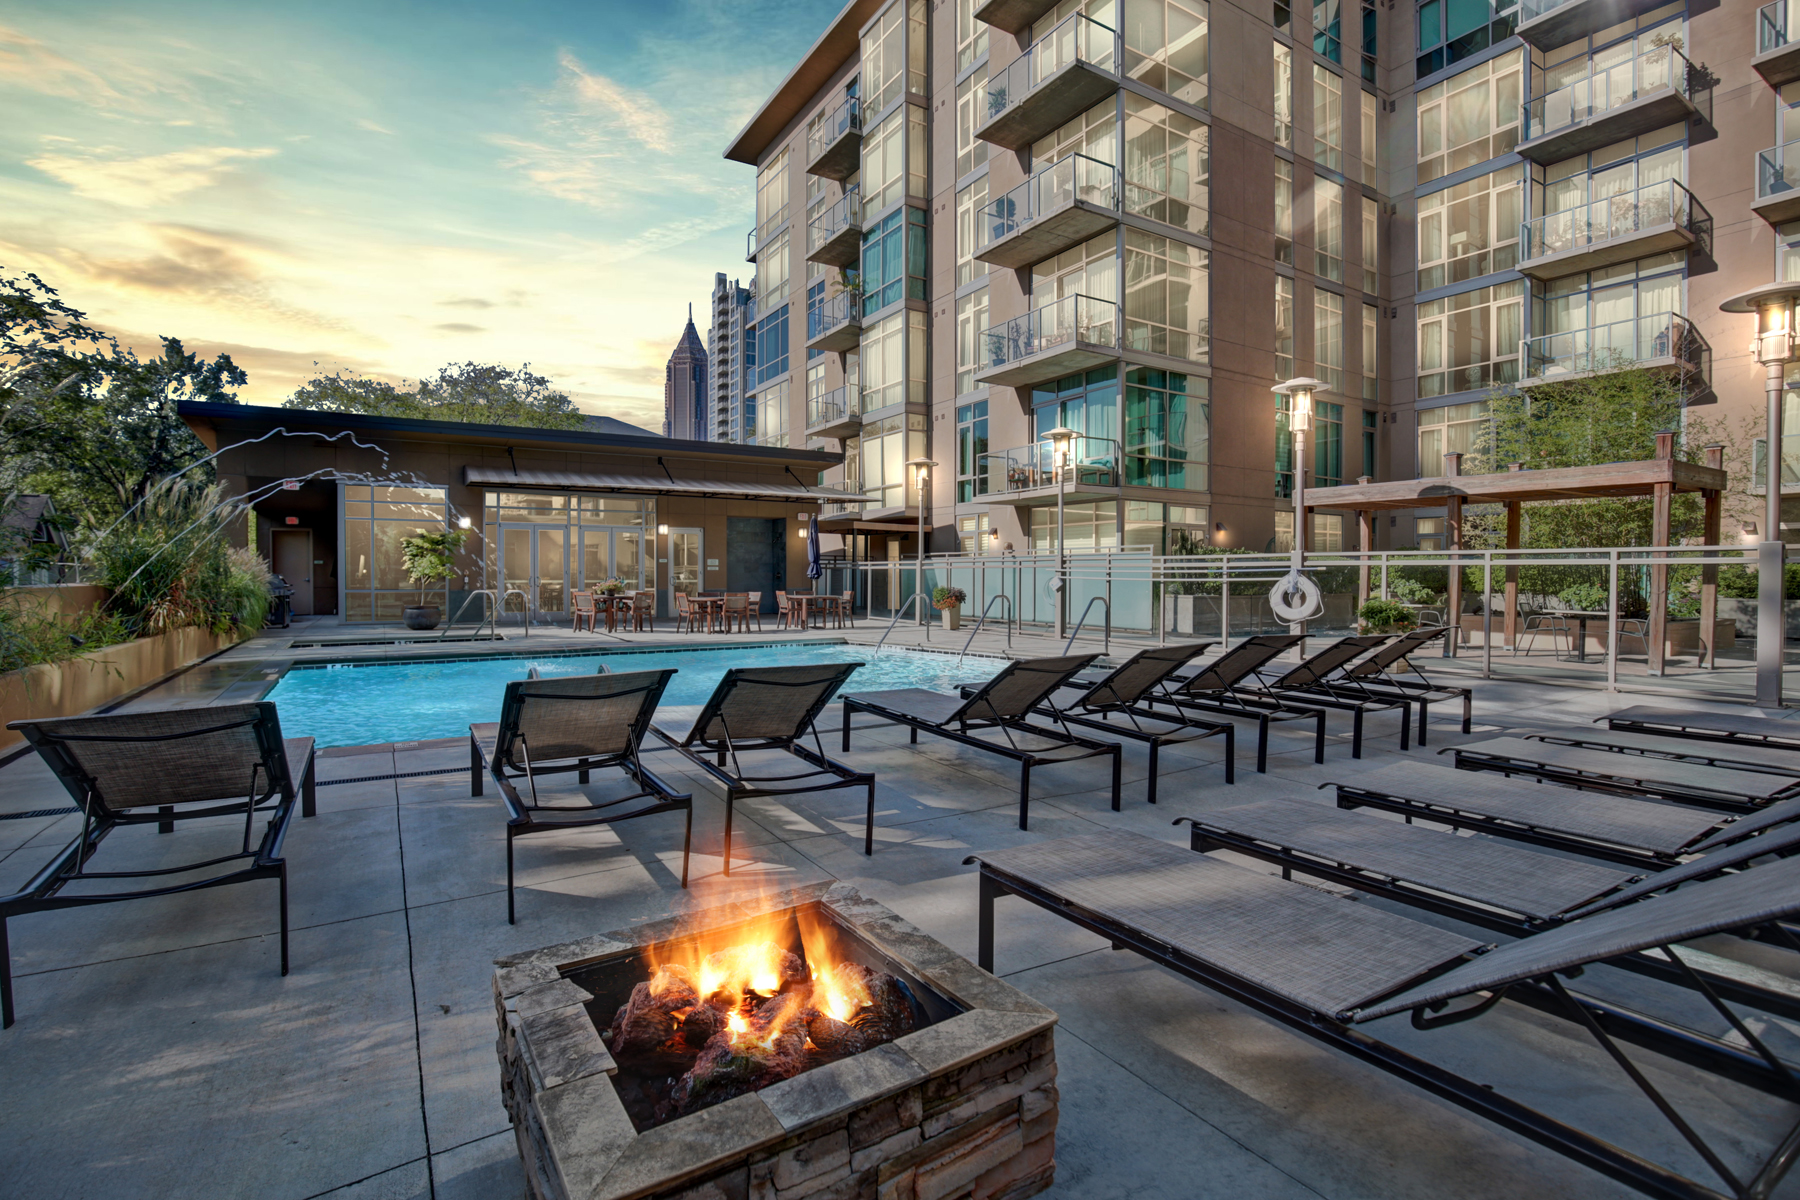 Condominium for Sale at Peaceful End Unit Located In The Heart Of Midtown With Unobstructed Views 905 Juniper Street NE No. 705 Atlanta, Georgia 30309 United States